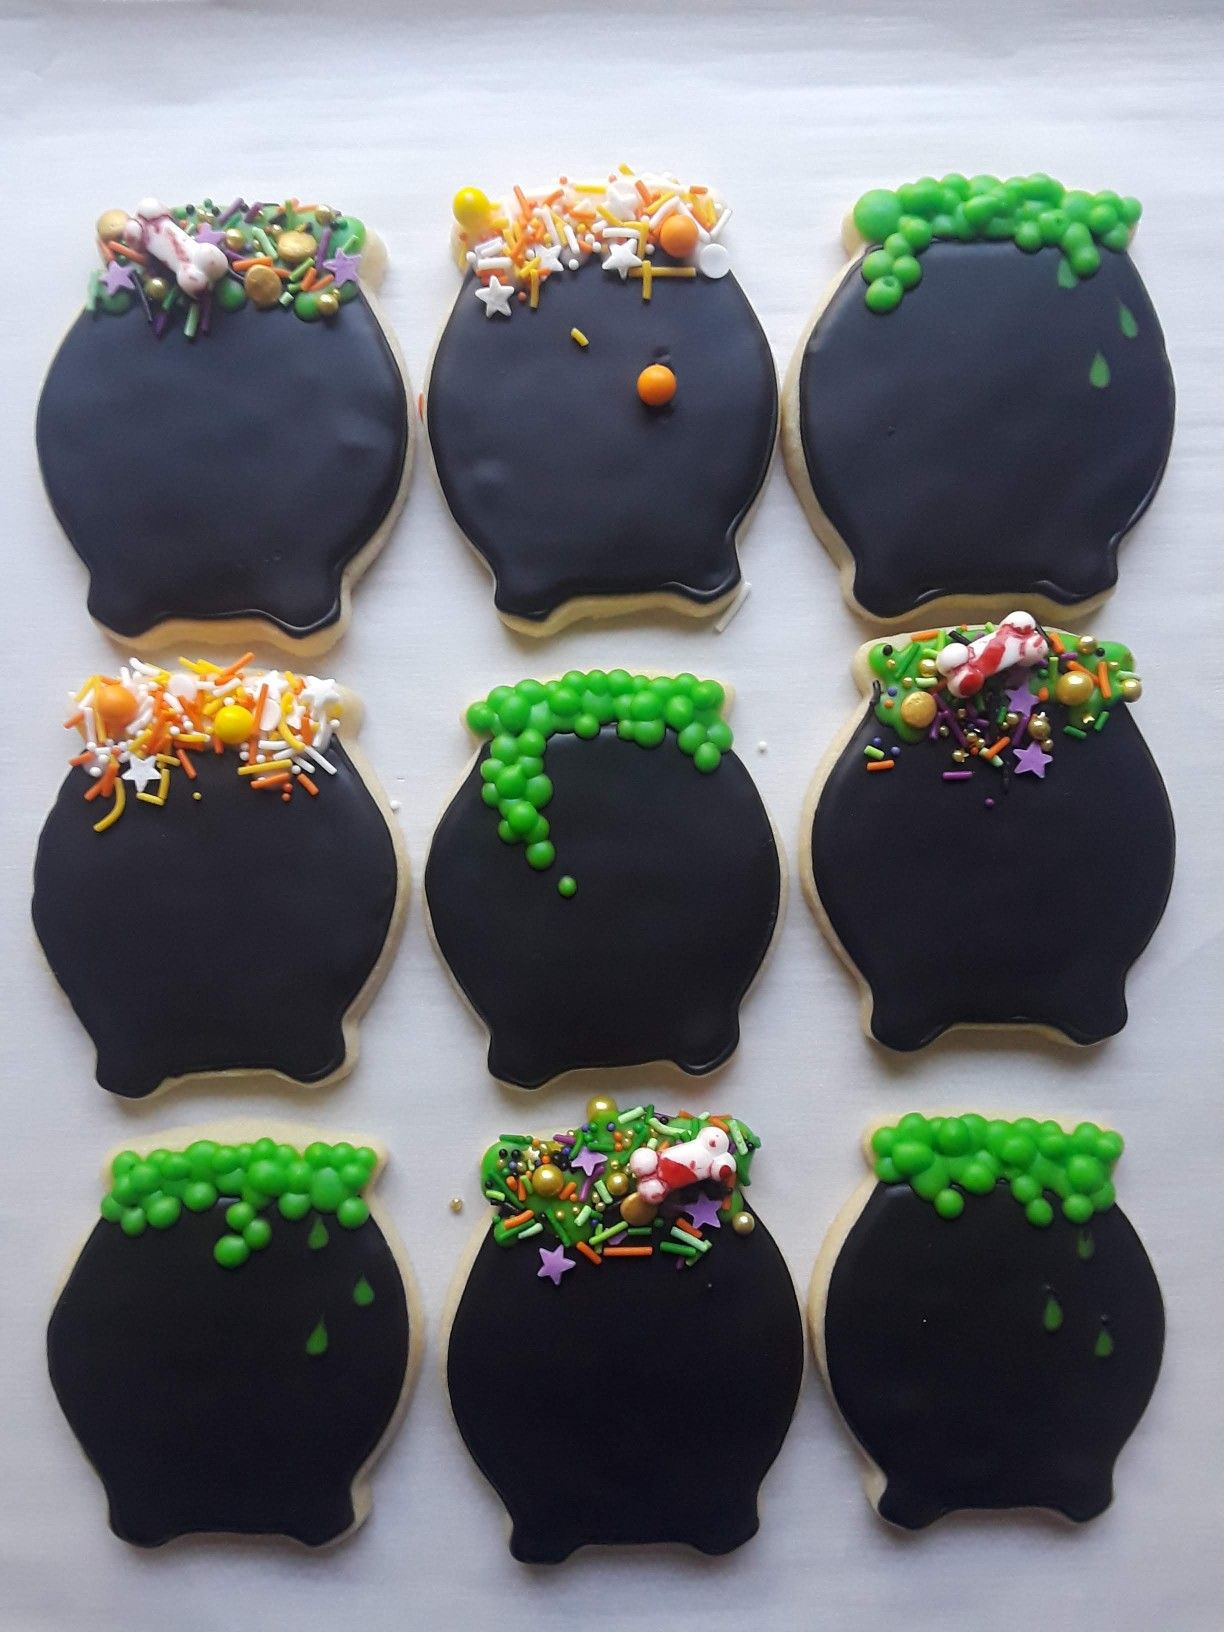 Cauldron decorated sugar cookies with witch's brew sprinkles  #halloween #fancysprinkles #cauldron #cauldroncookies #sugarcookies #decoratedcookies #cookiedecorating #sprinkles #customcookies #halloweencookies